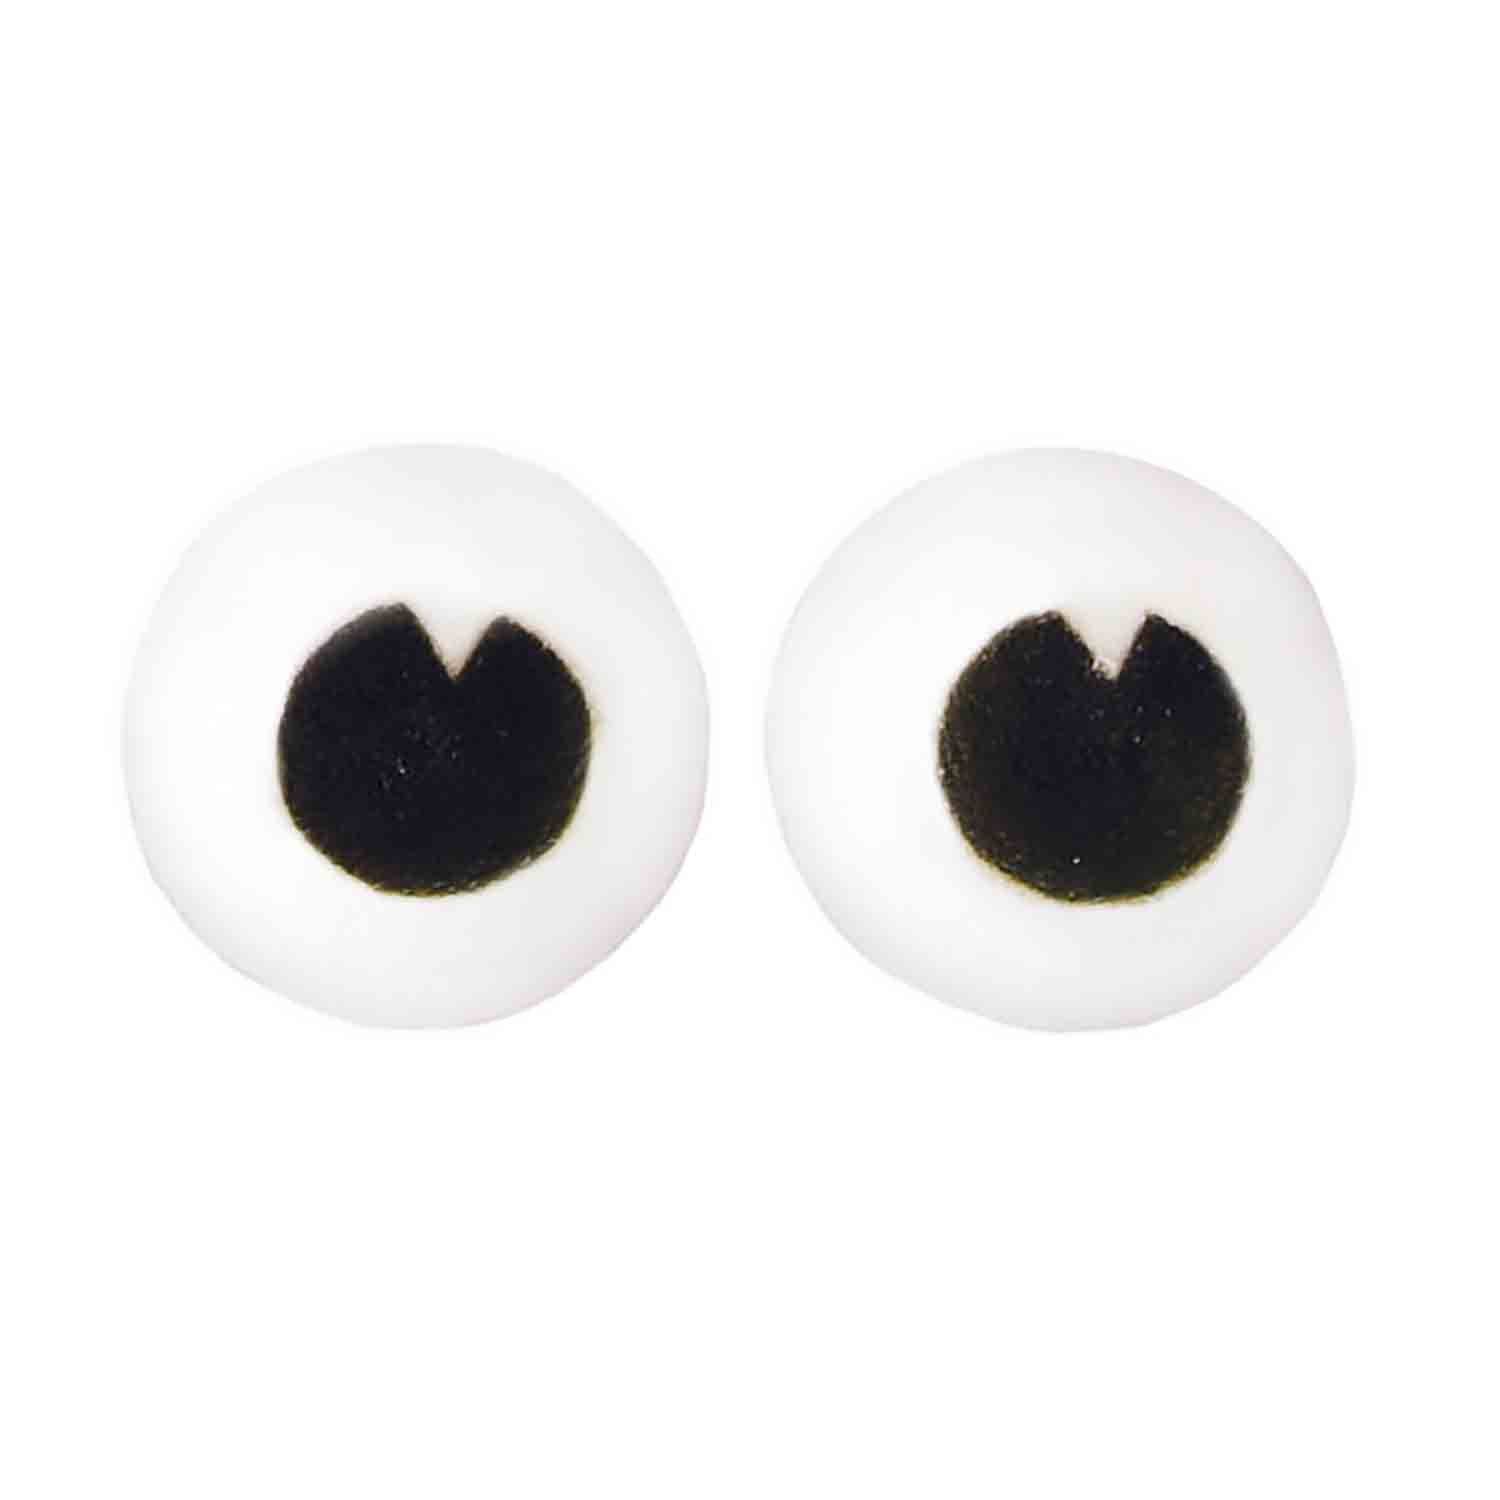 Dec-Ons® Molded Sugar - Large Eyes